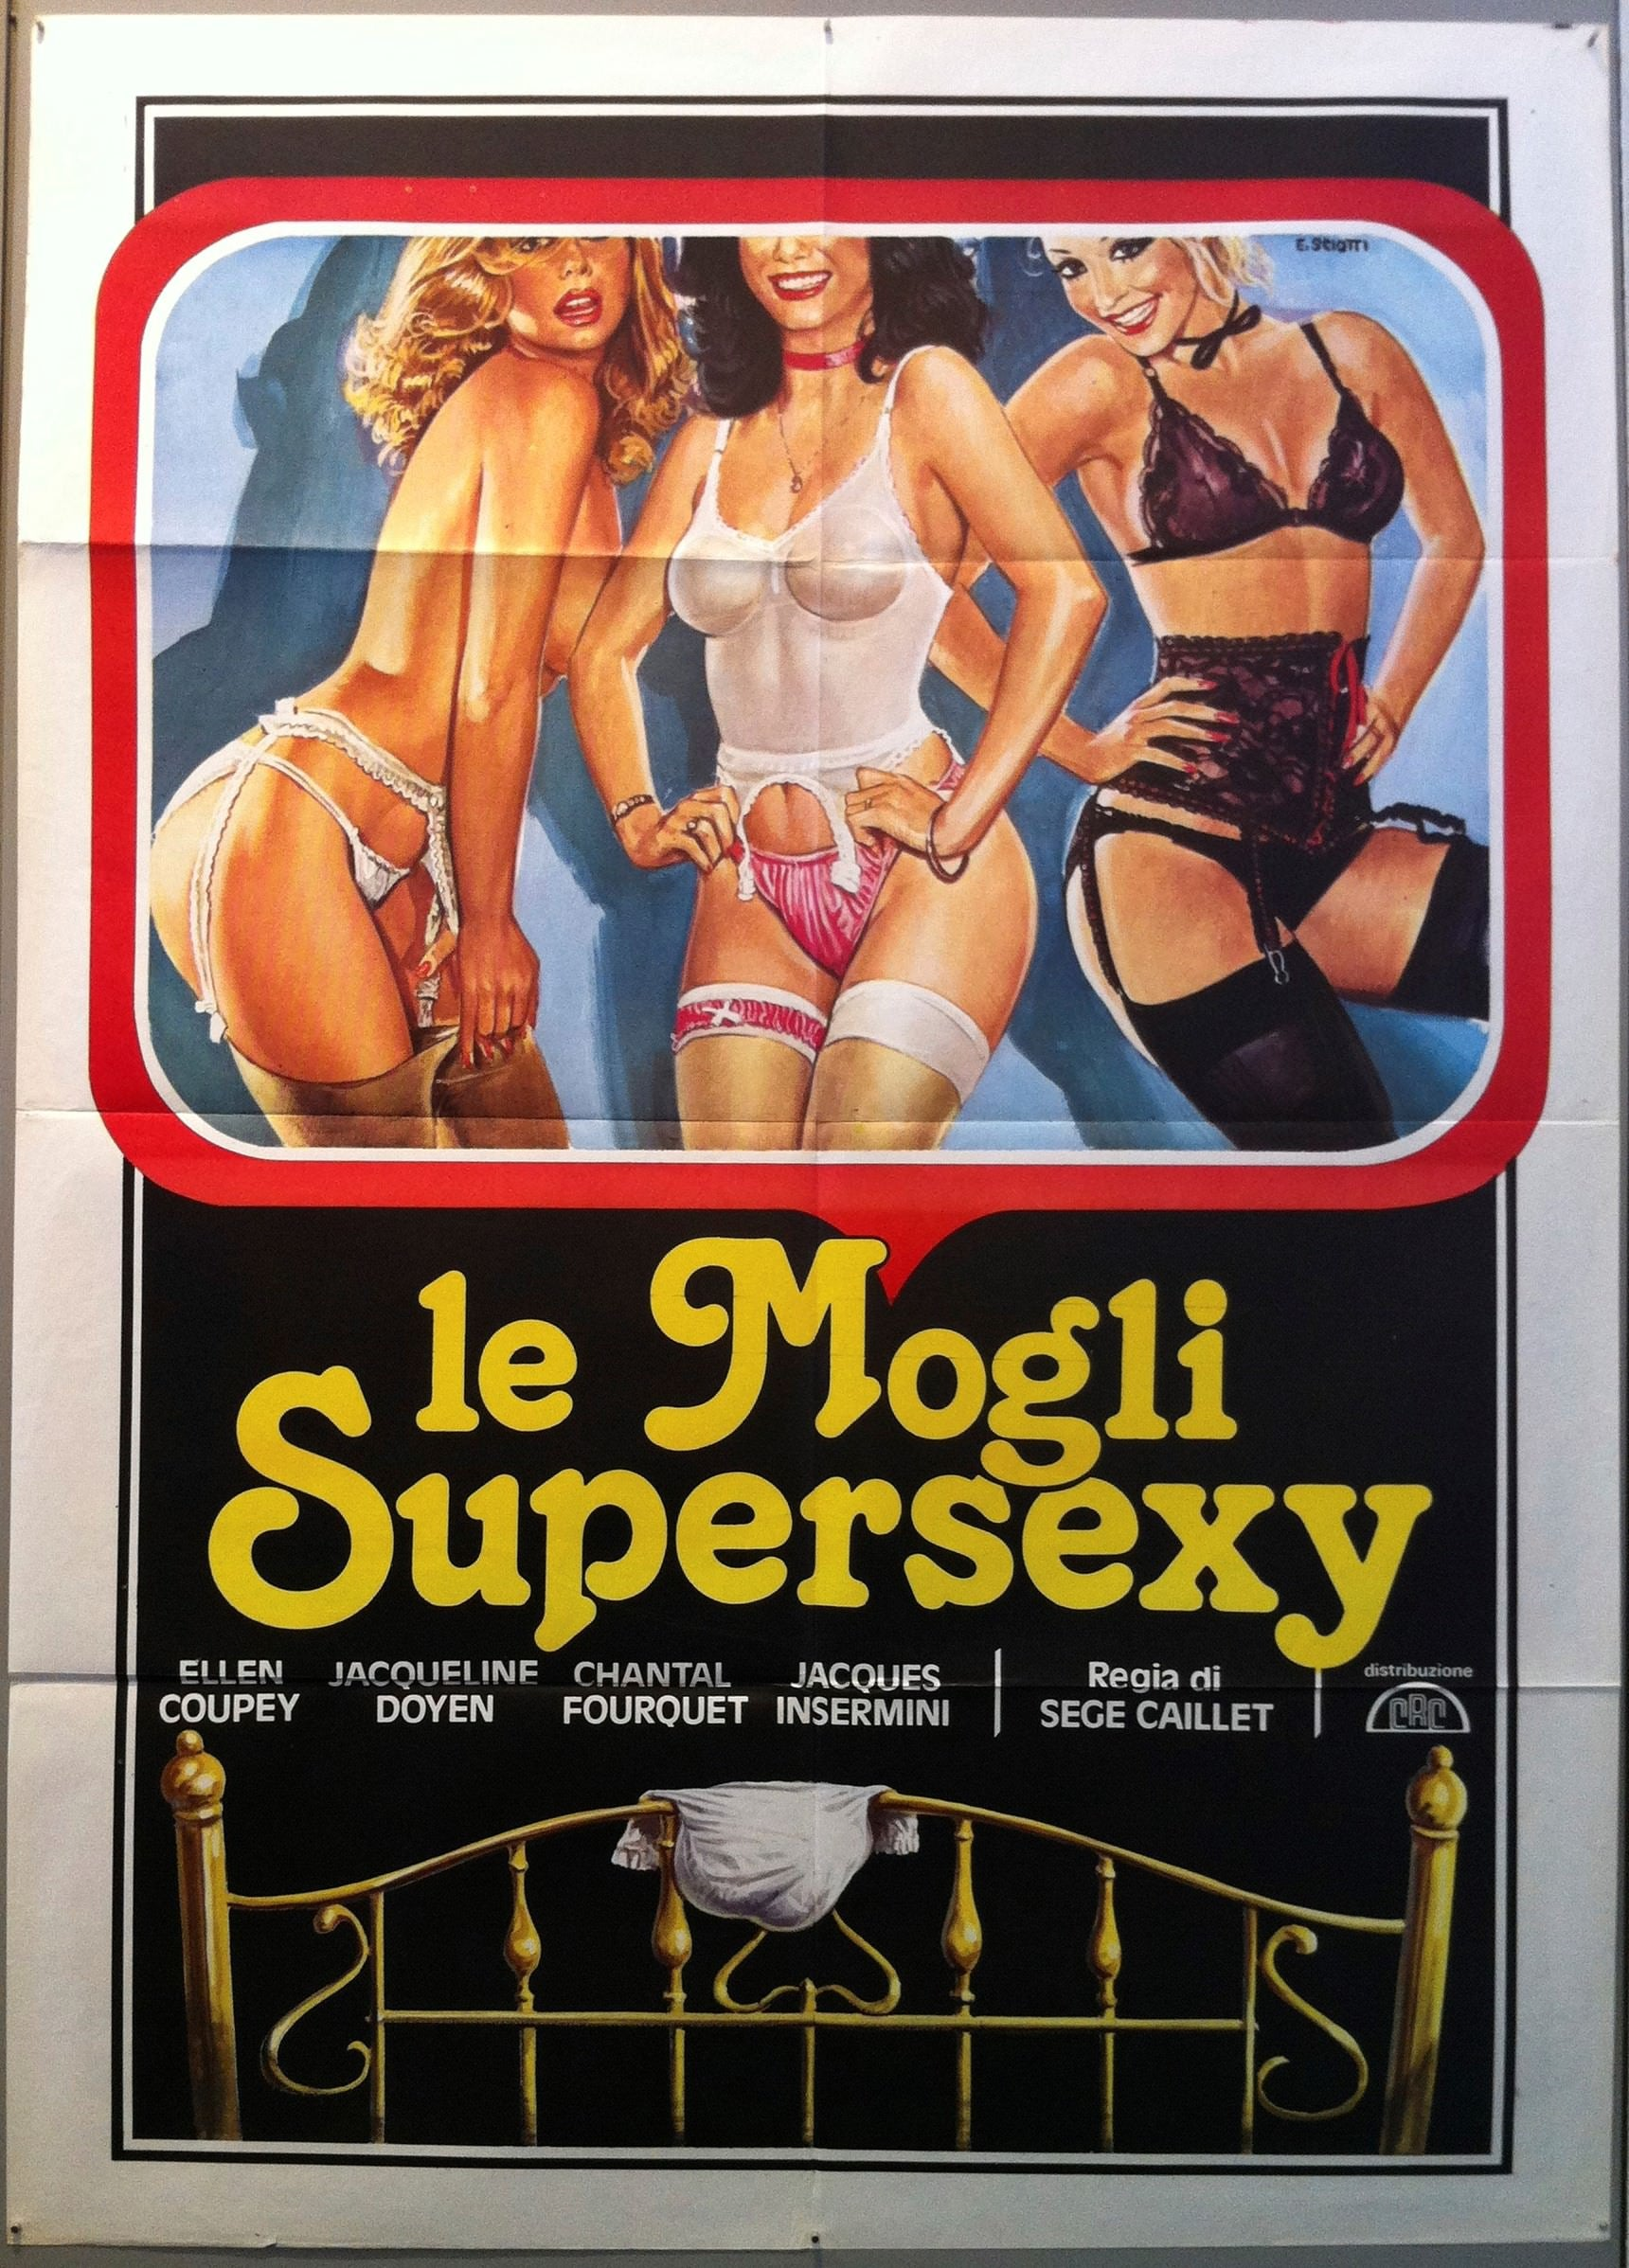 Le Mogli Supersexy